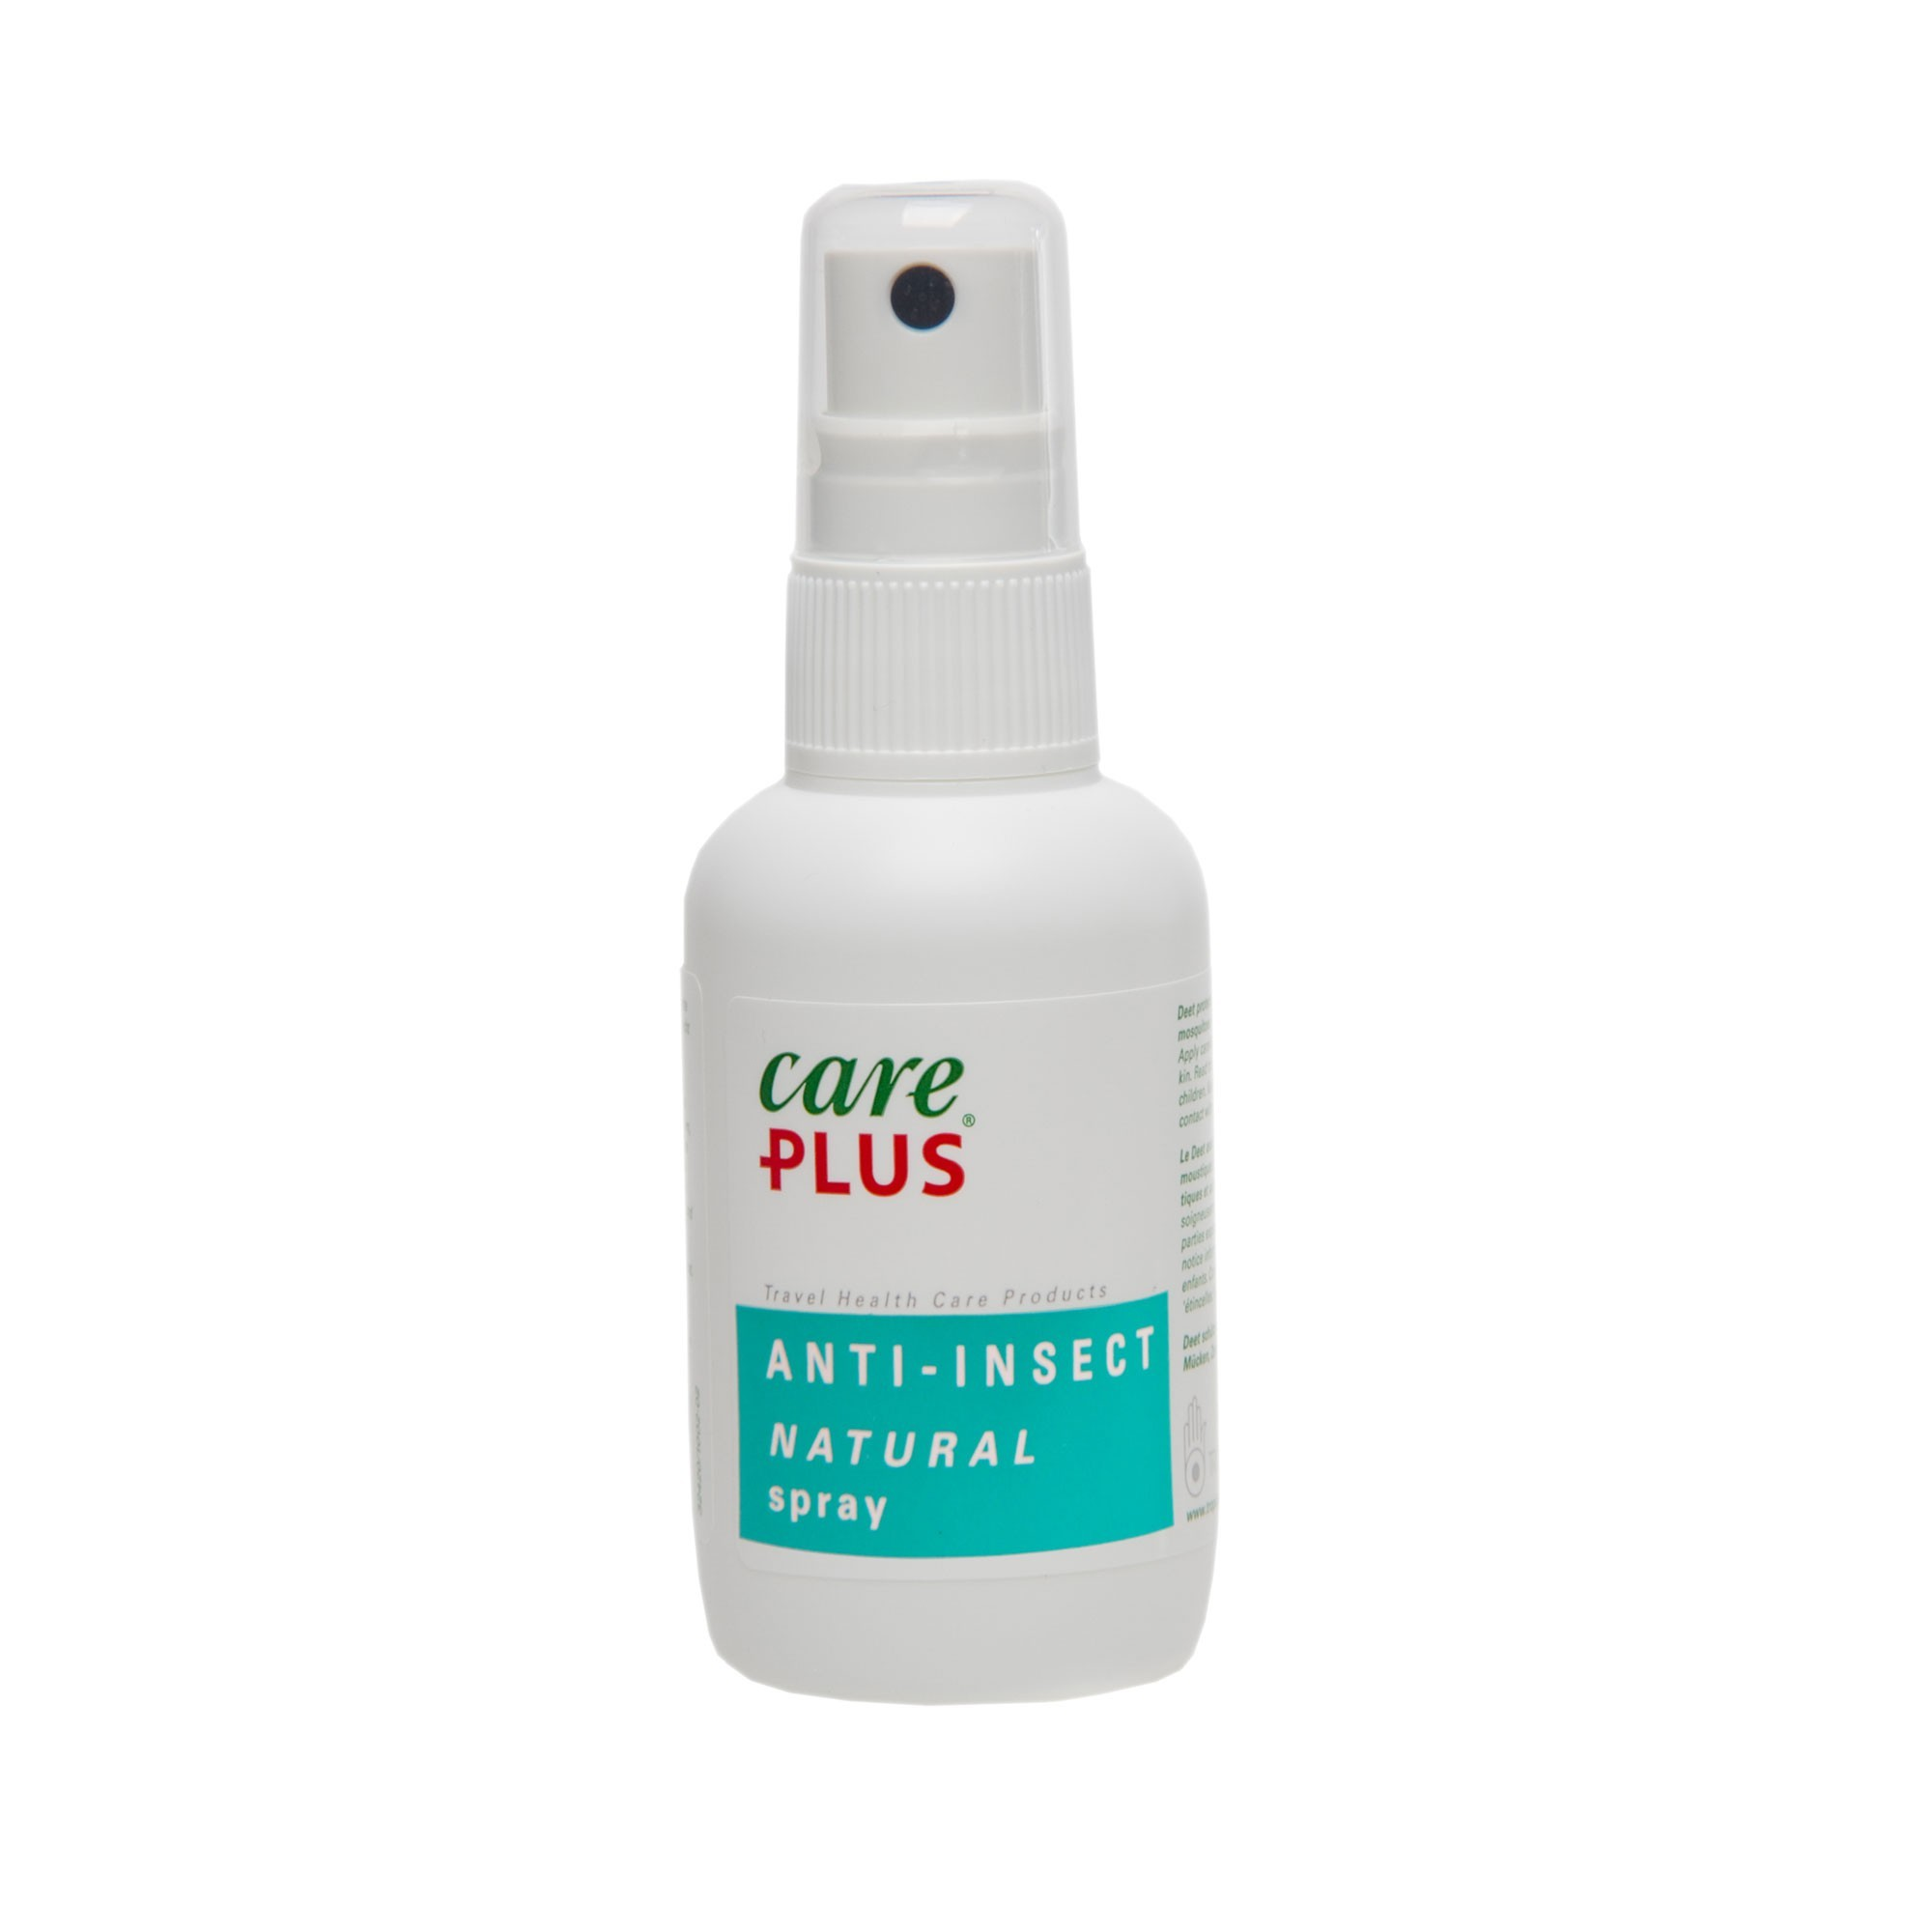 Afbeelding van Care Plus Anti insect Natural Spray 15 Ml